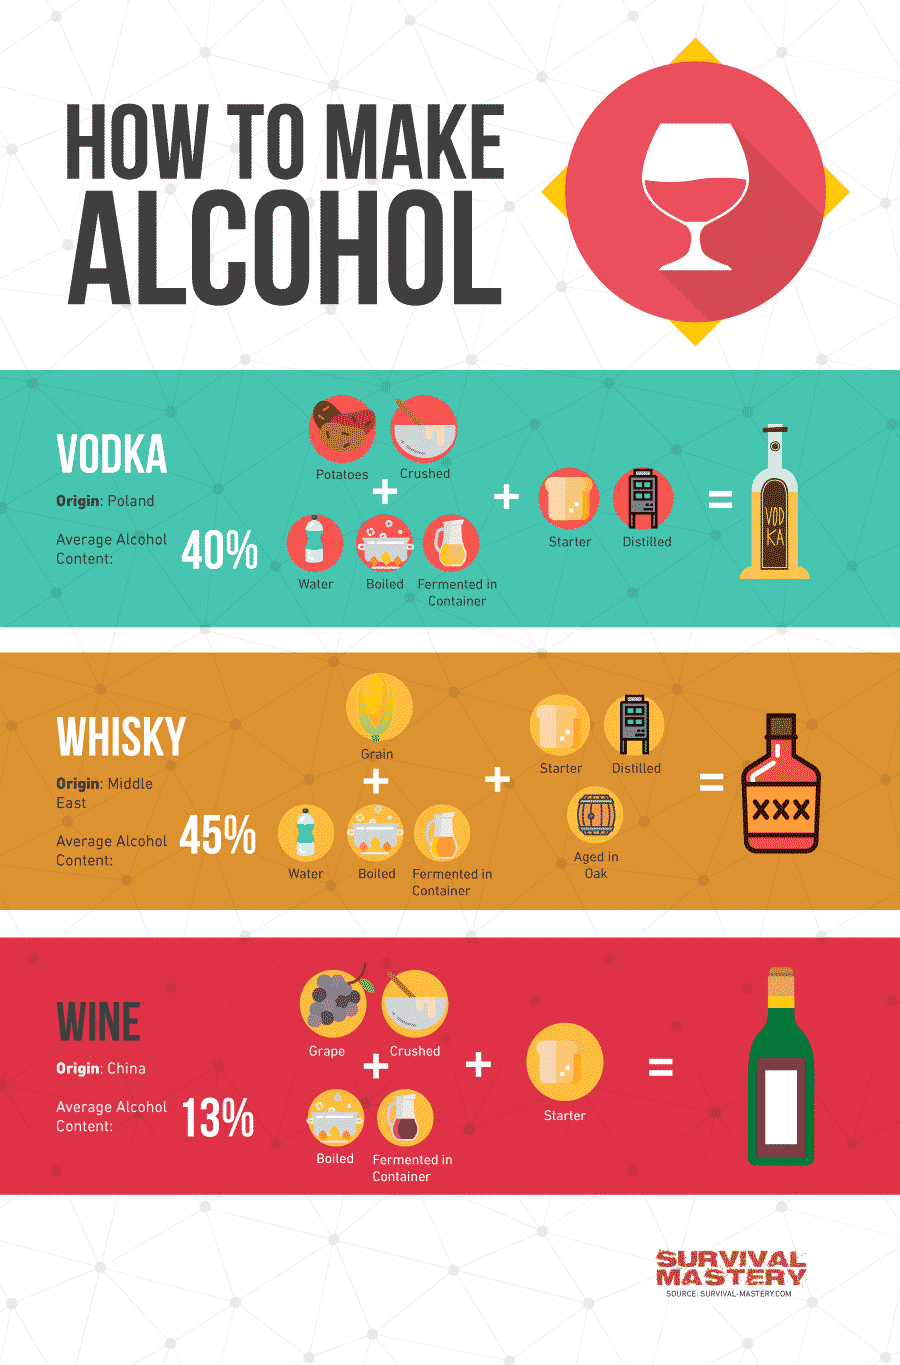 How to Make Alcohol infographic